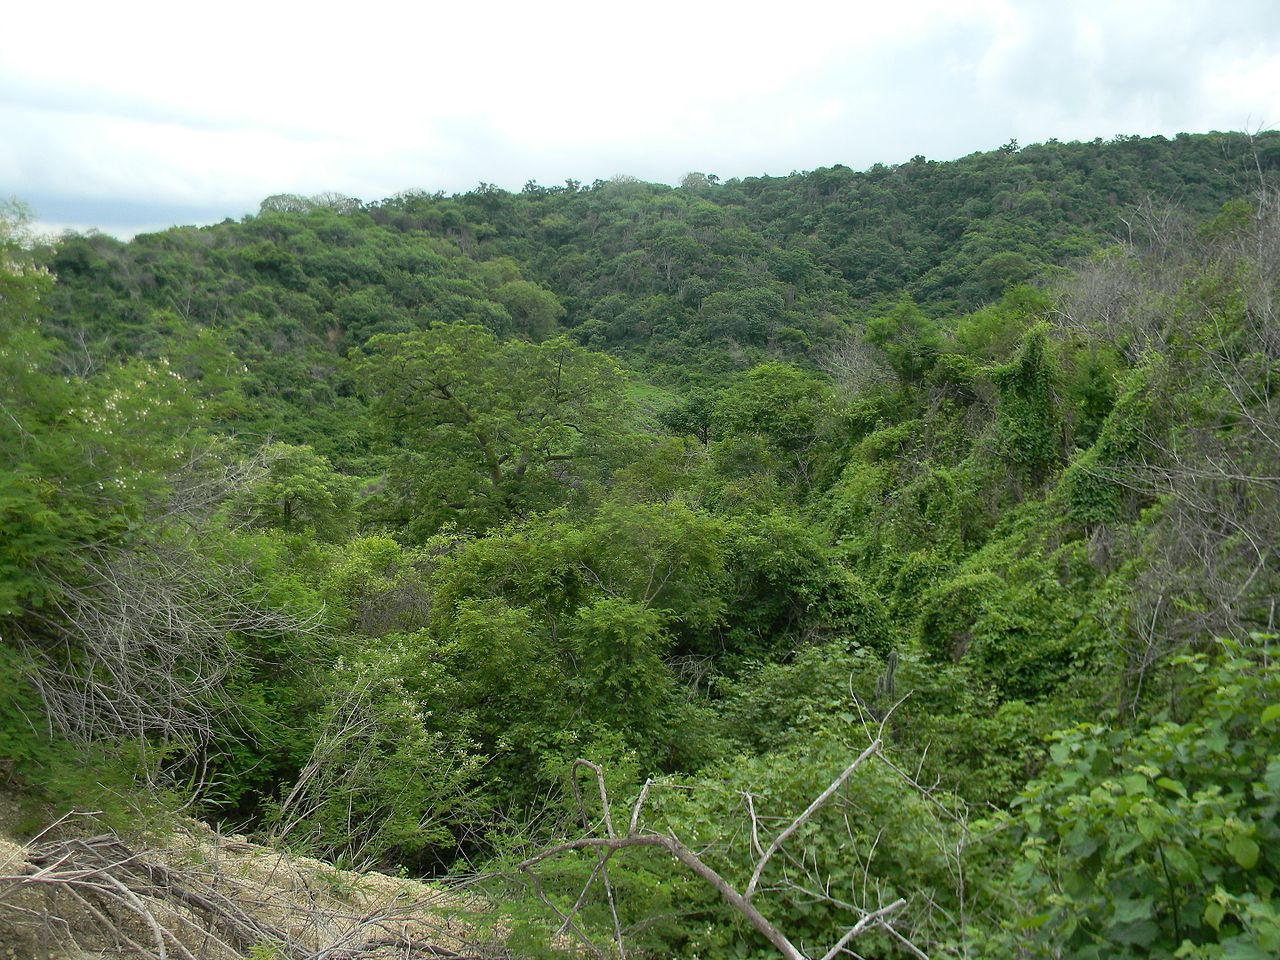 El bosque seco tropical es un bioma de bosques de frondosas